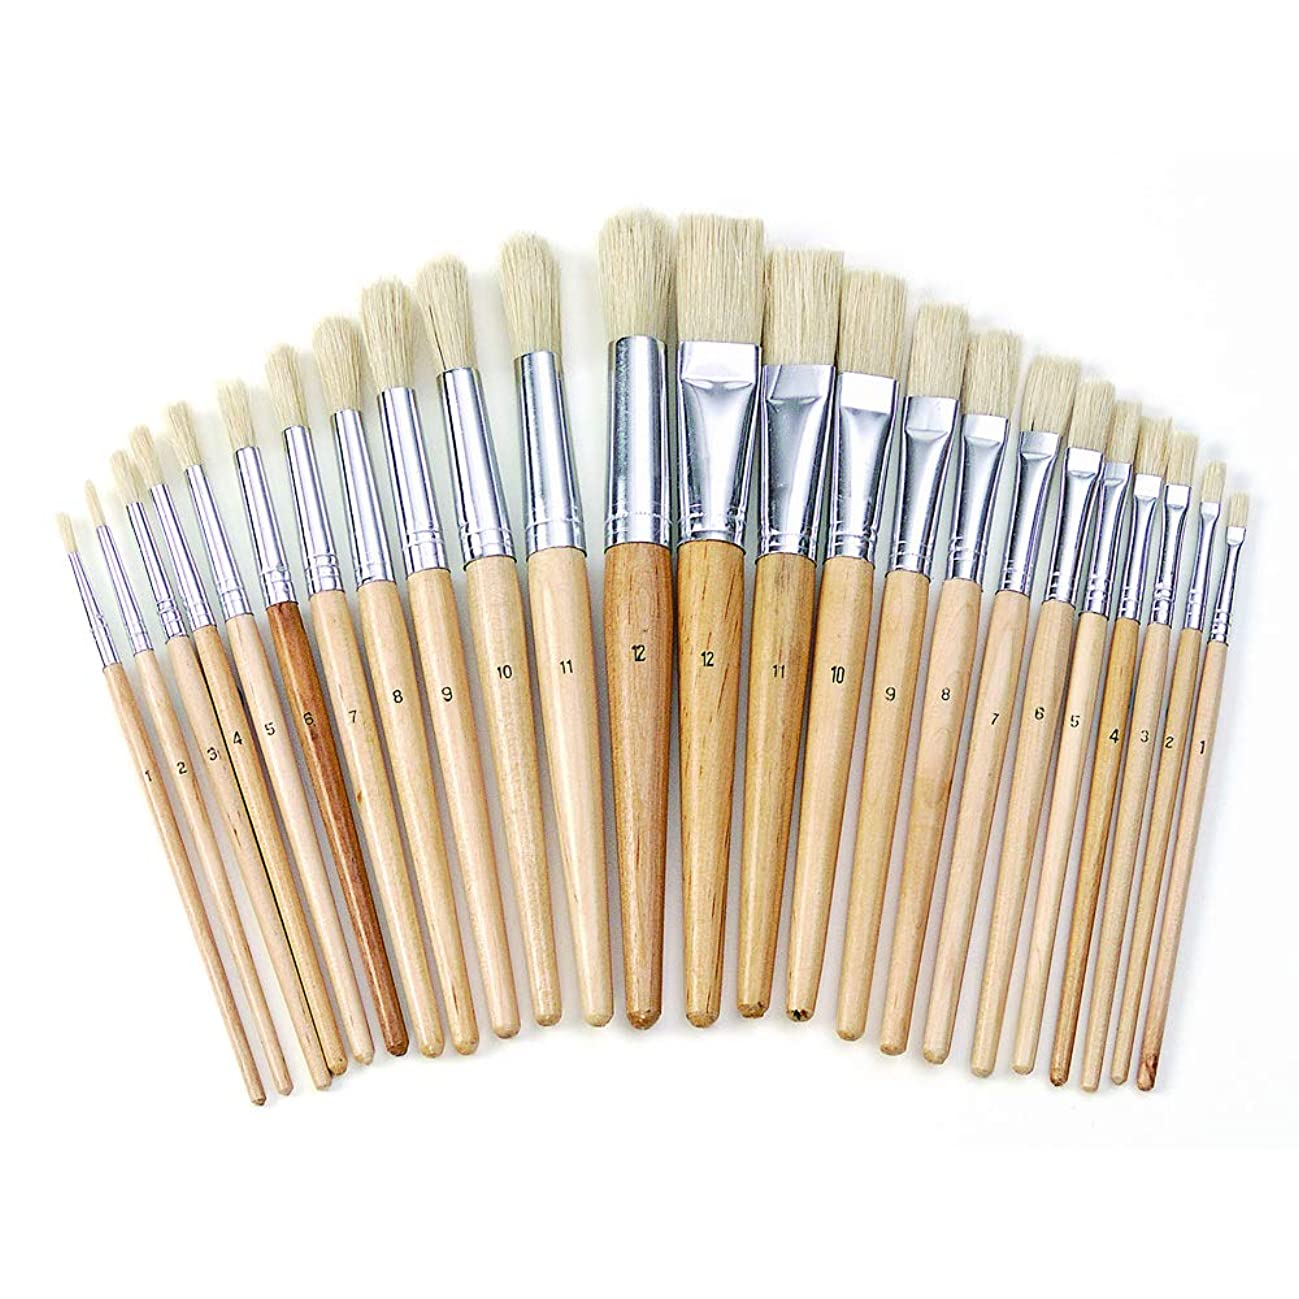 Colorations Easel Paint Brushes Assortment Value Pack Classroom Size Art Supplies for Painting (24 Pack)